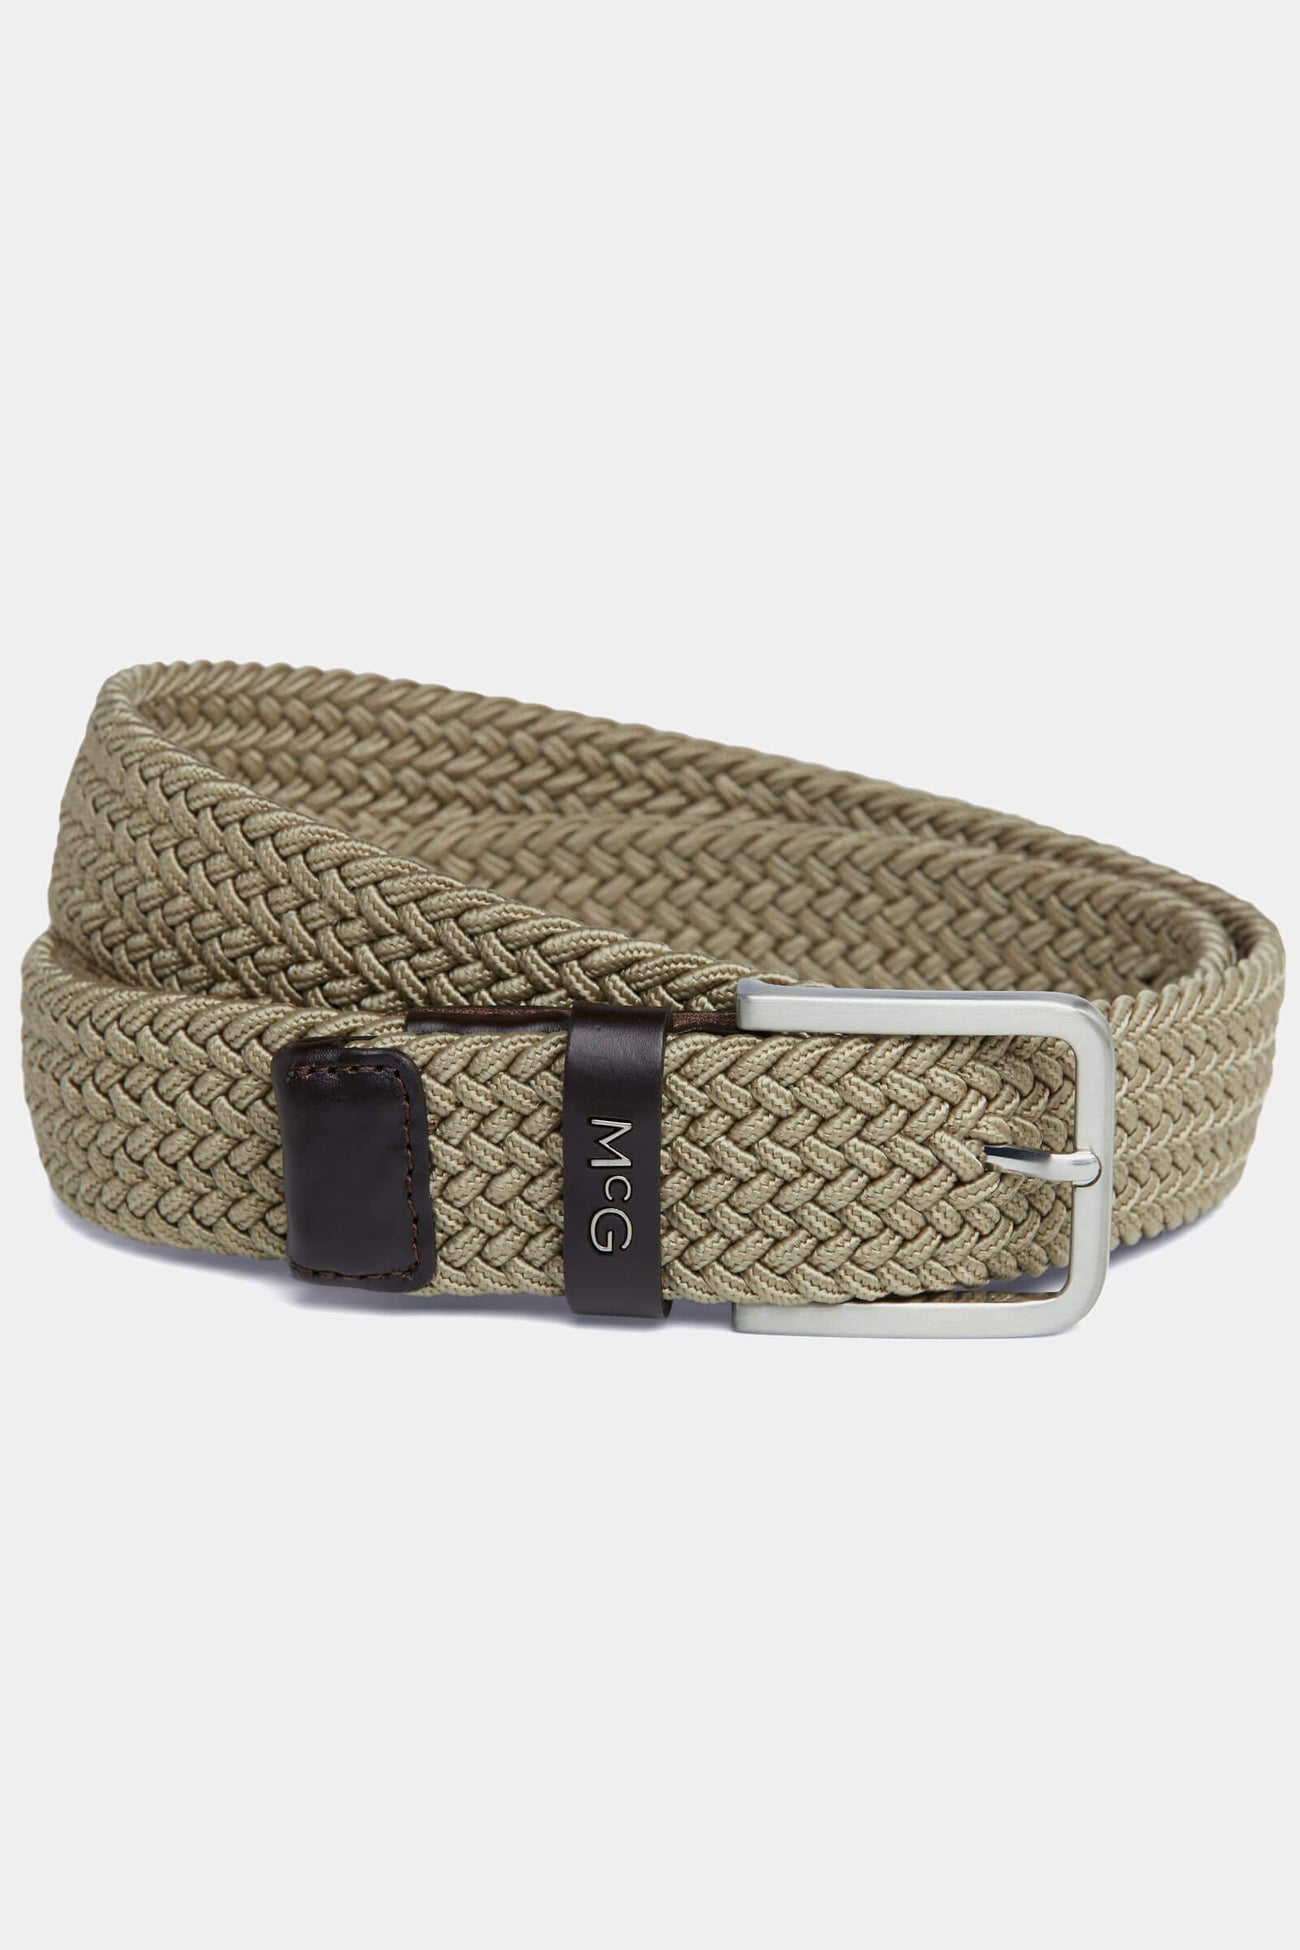 The McG Braided Belt